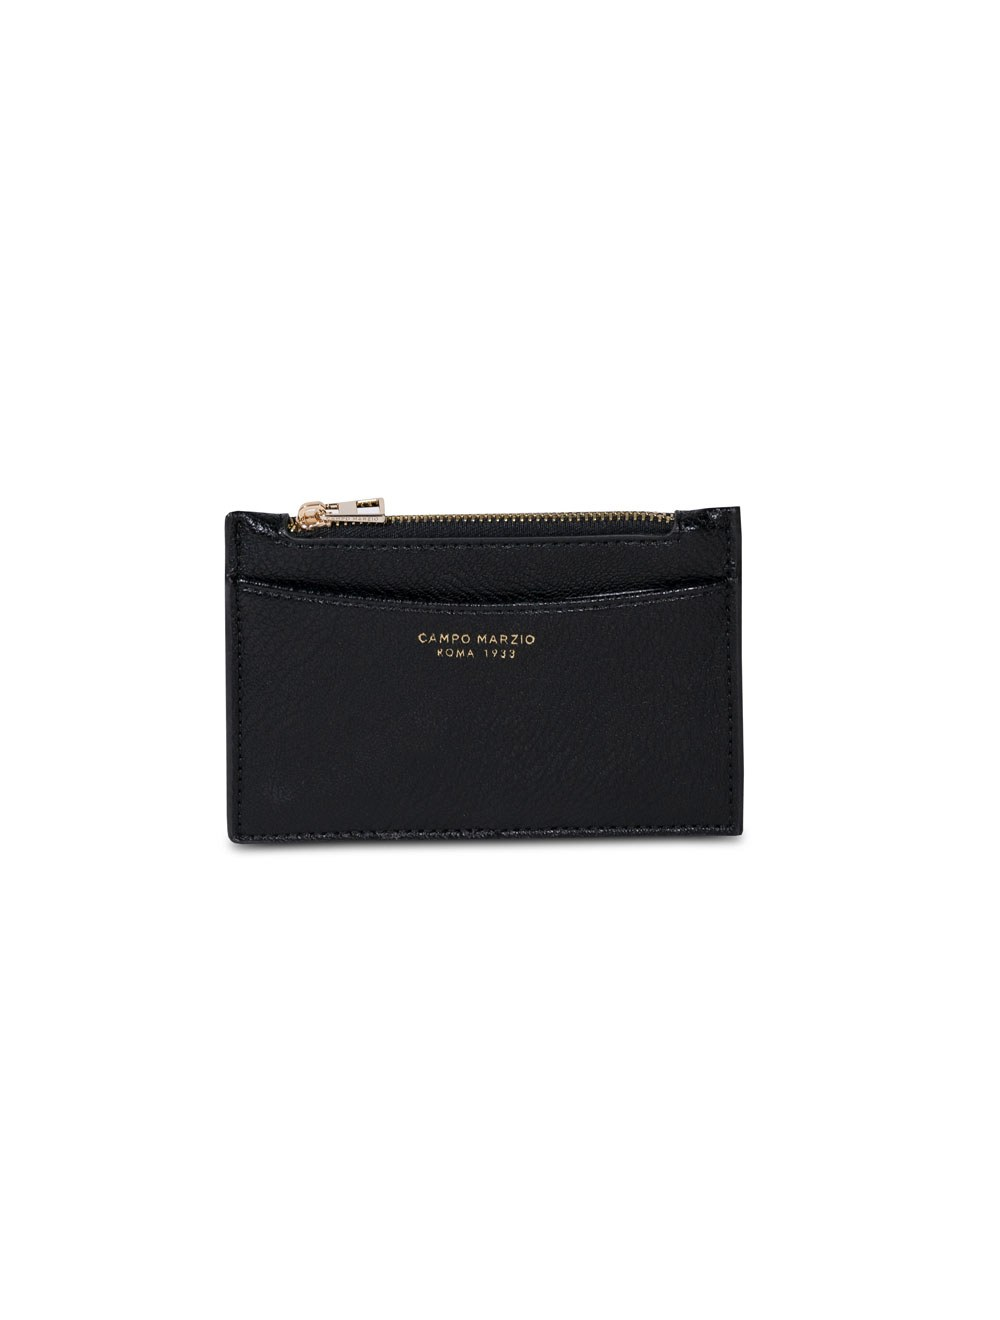 Card Holder With Zip - Black